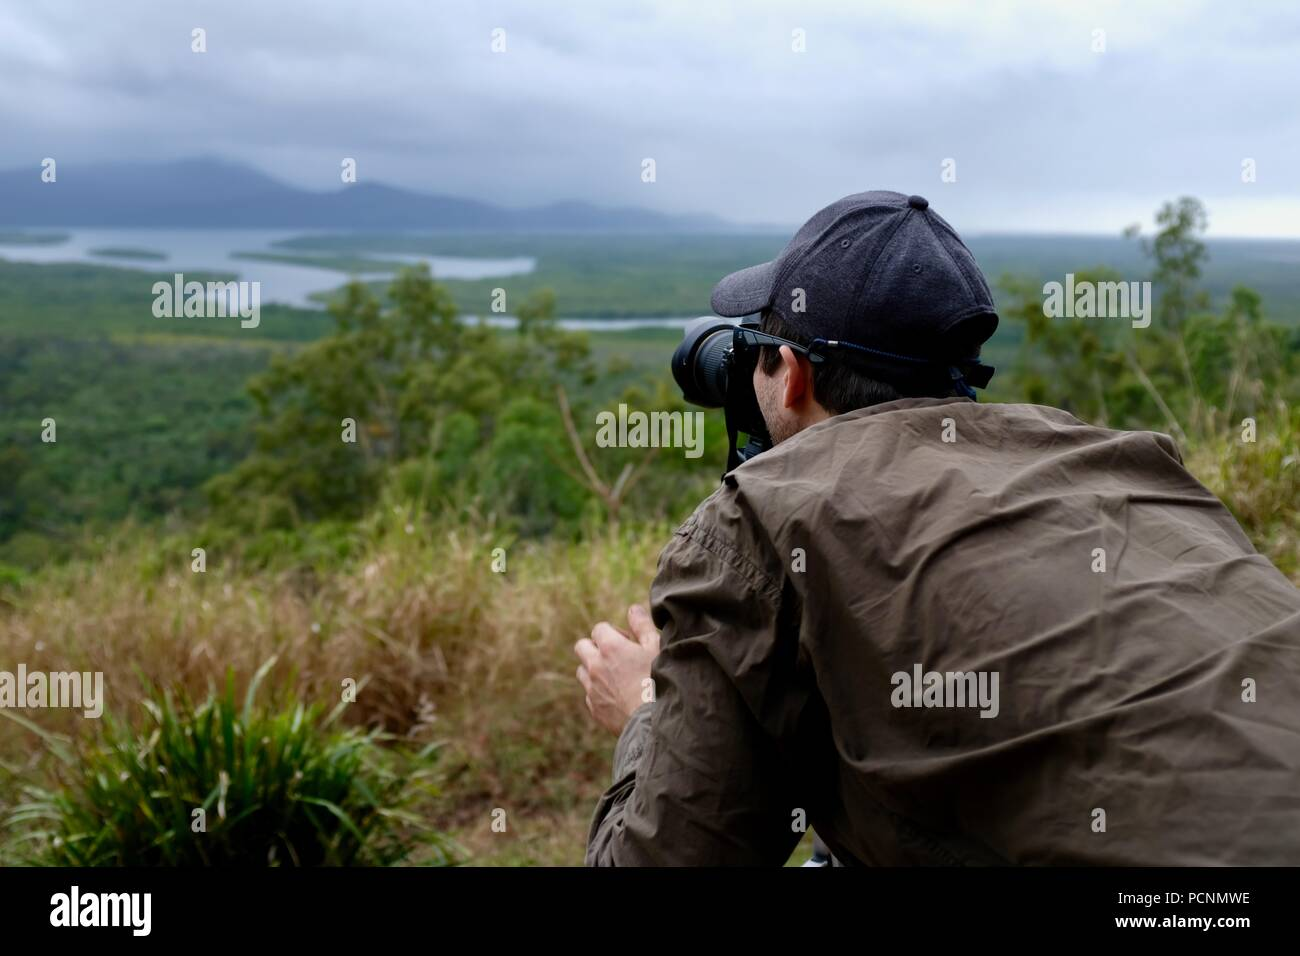 A man taking a photograph at the Panjoo Lookout, Cardwell, Queensland, Australia - Stock Image